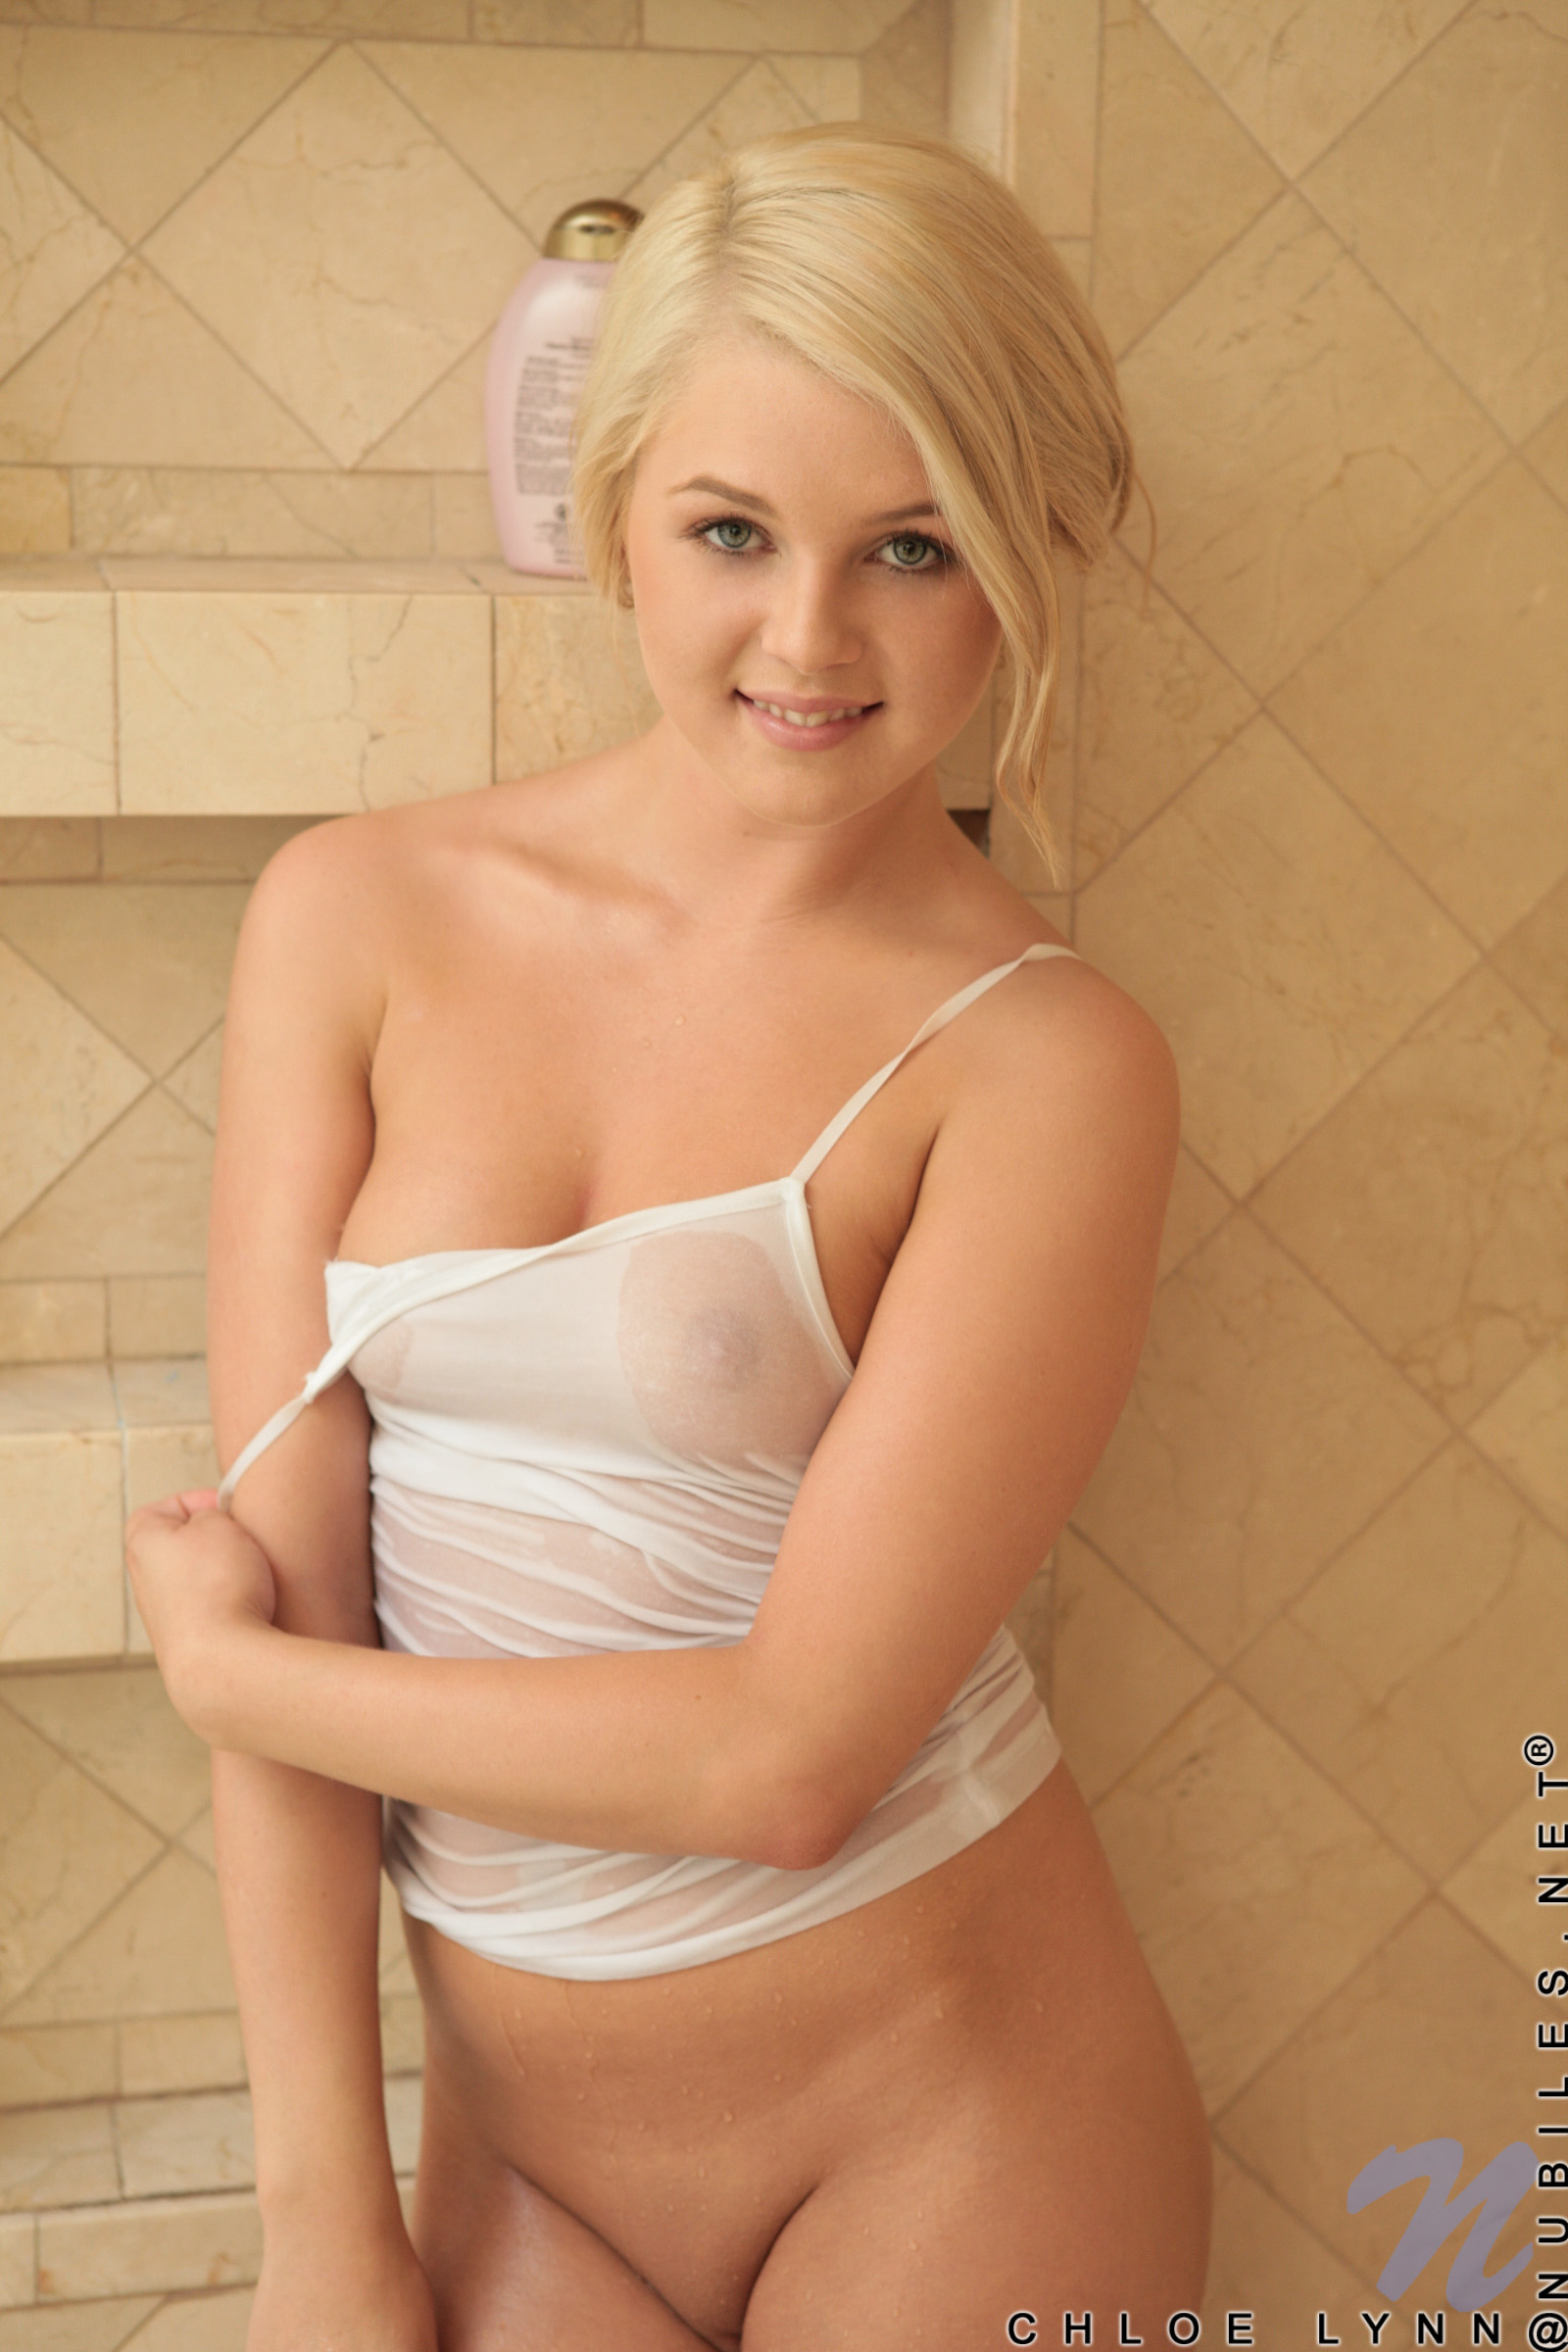 sexy naked blonde girls in the shower